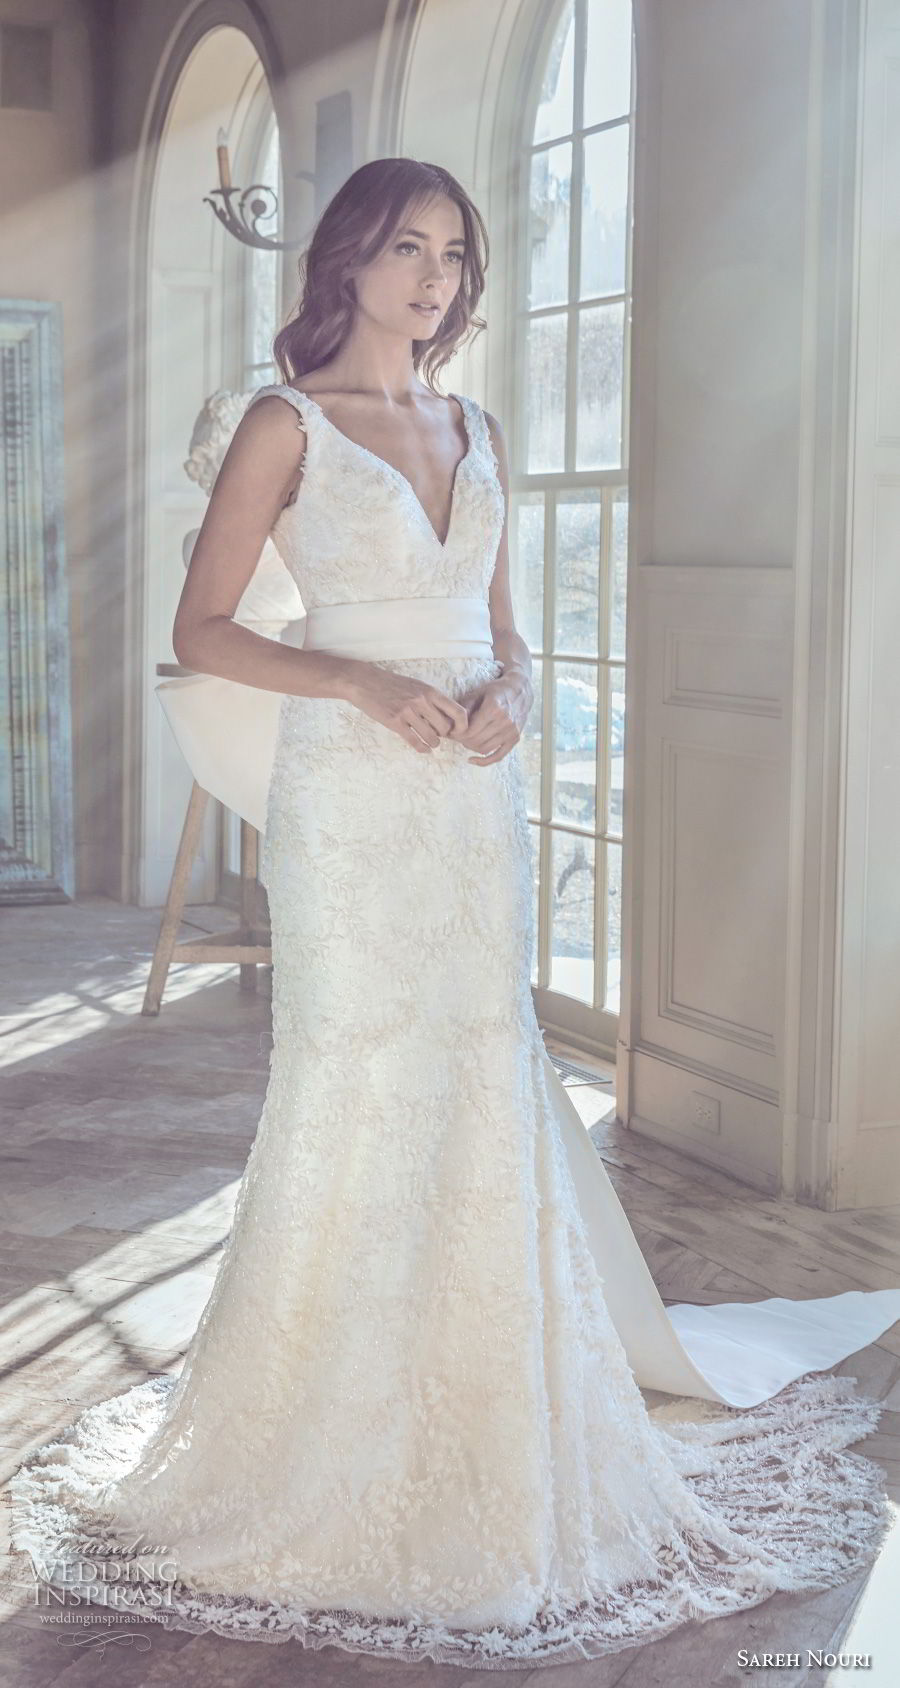 sareh nouri spring 2019 bridal sleeveless with strap deep v neck full embellishment elegant romantic fit and flare wedding dress v back ribbon chapel train (11) mv